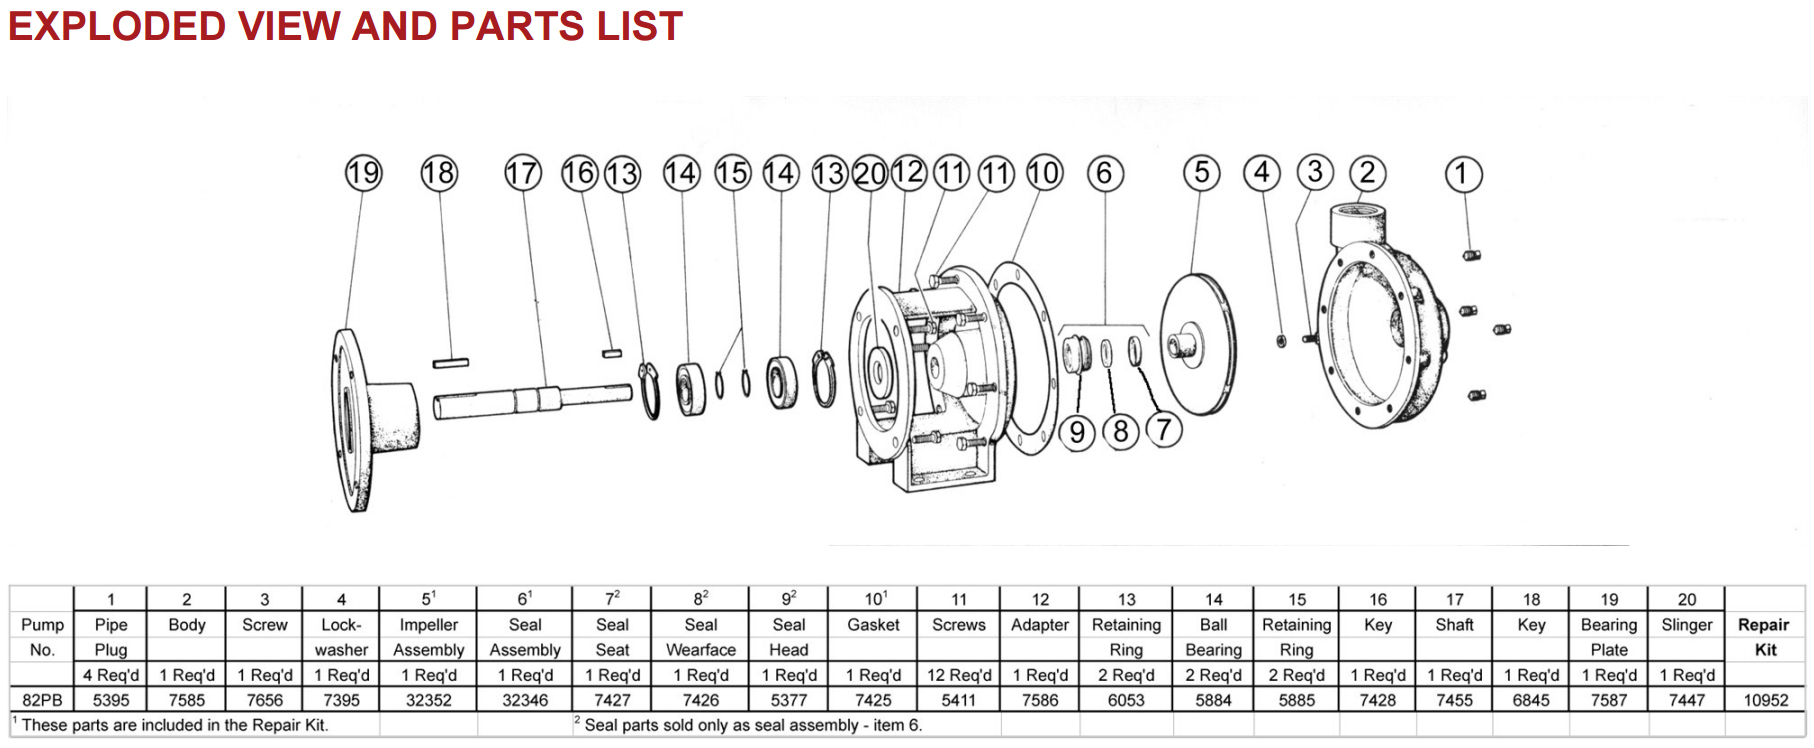 82PB Exploded View and Parts List